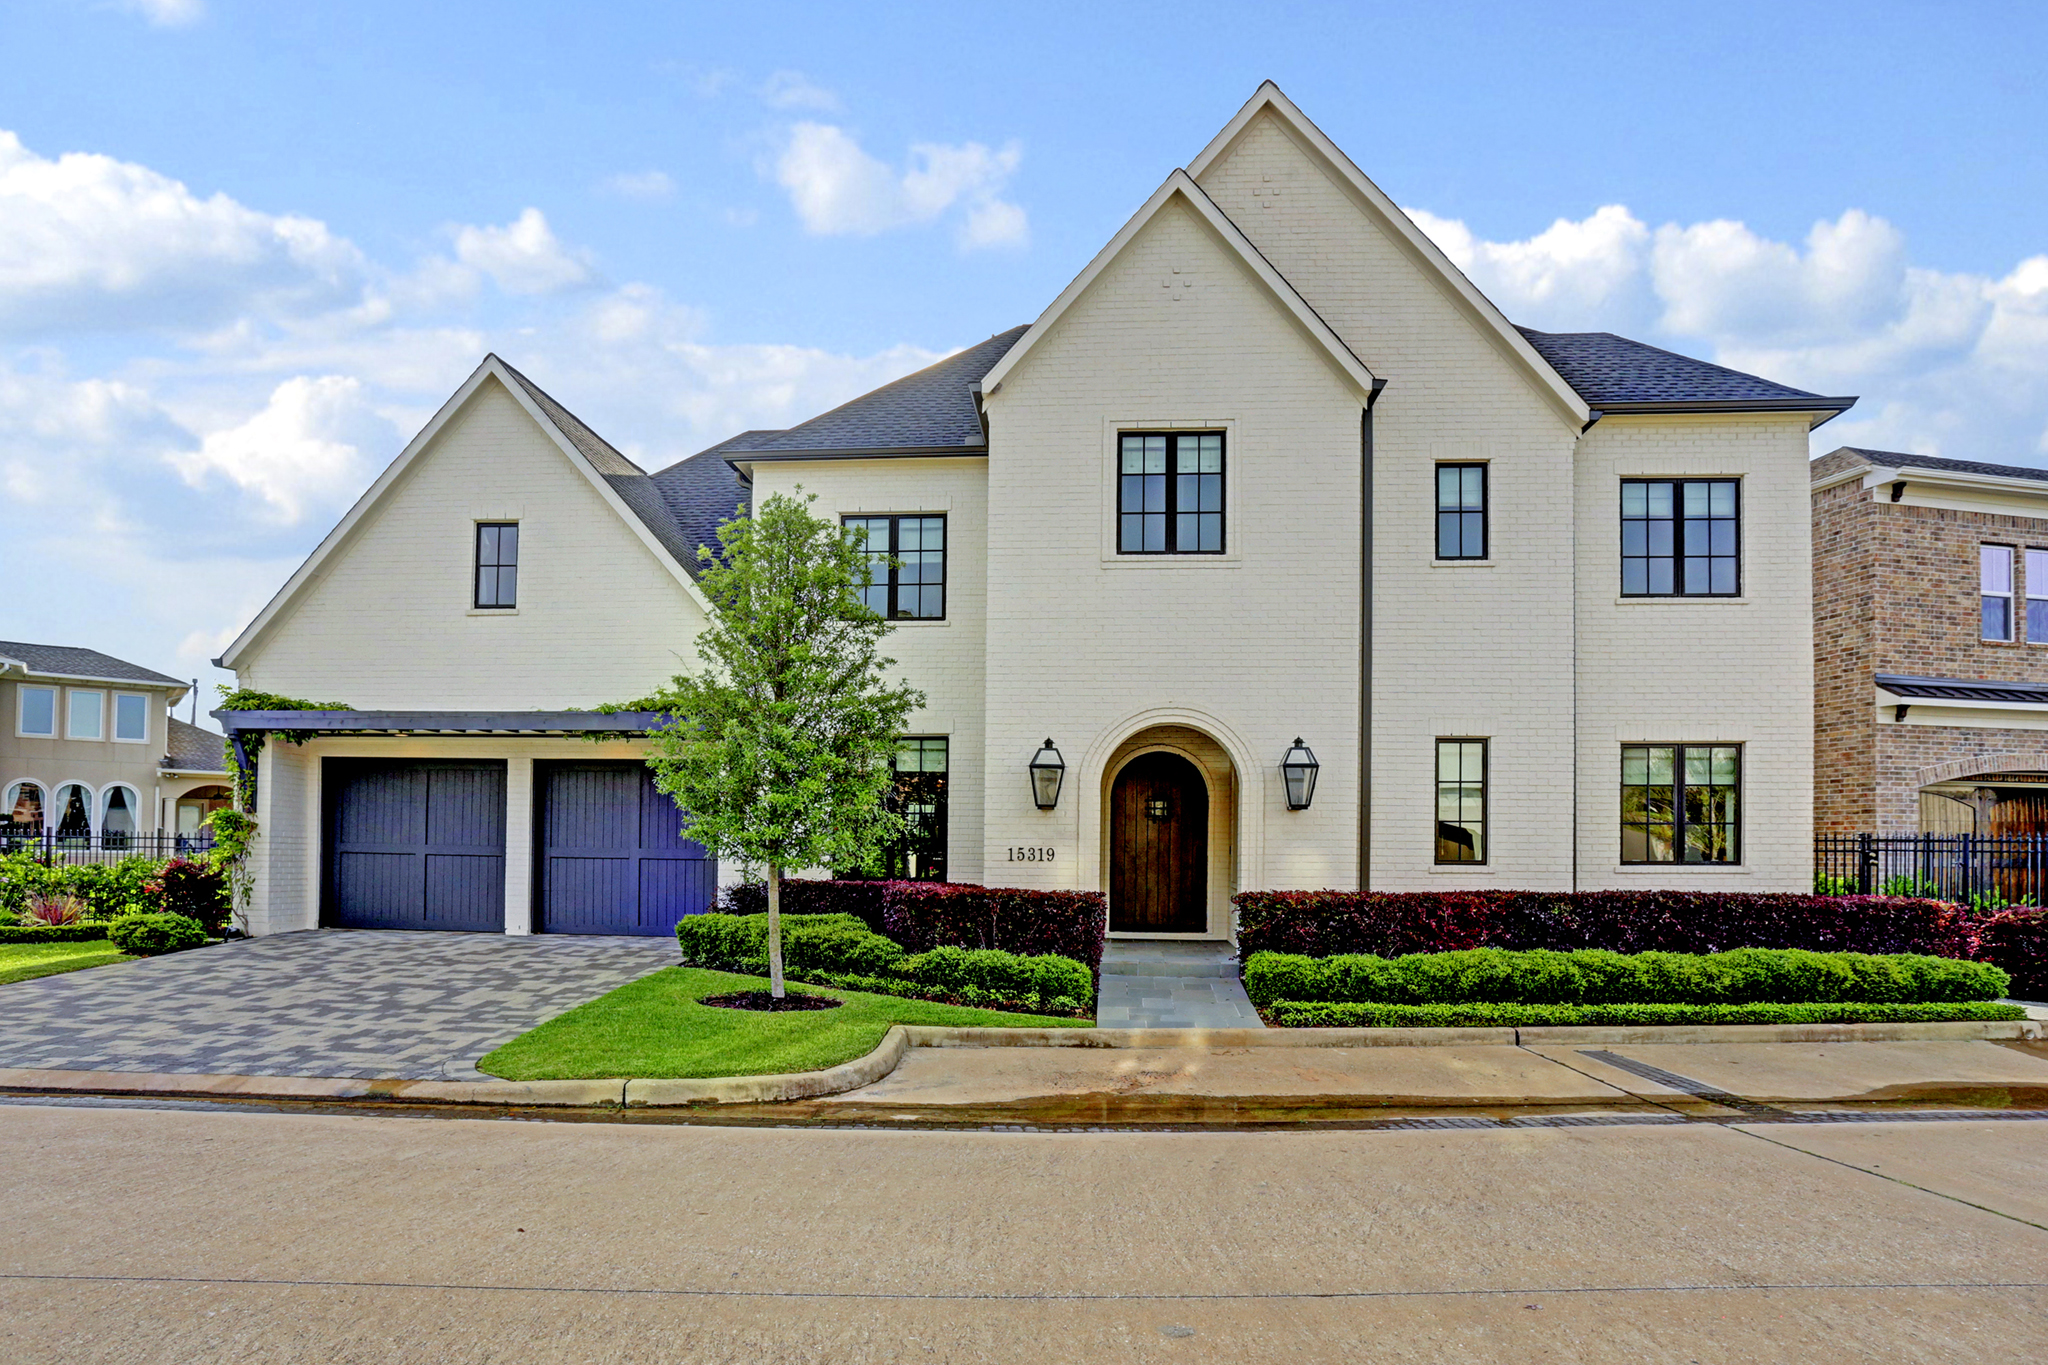 Oyster Creek 15319 IMG 02